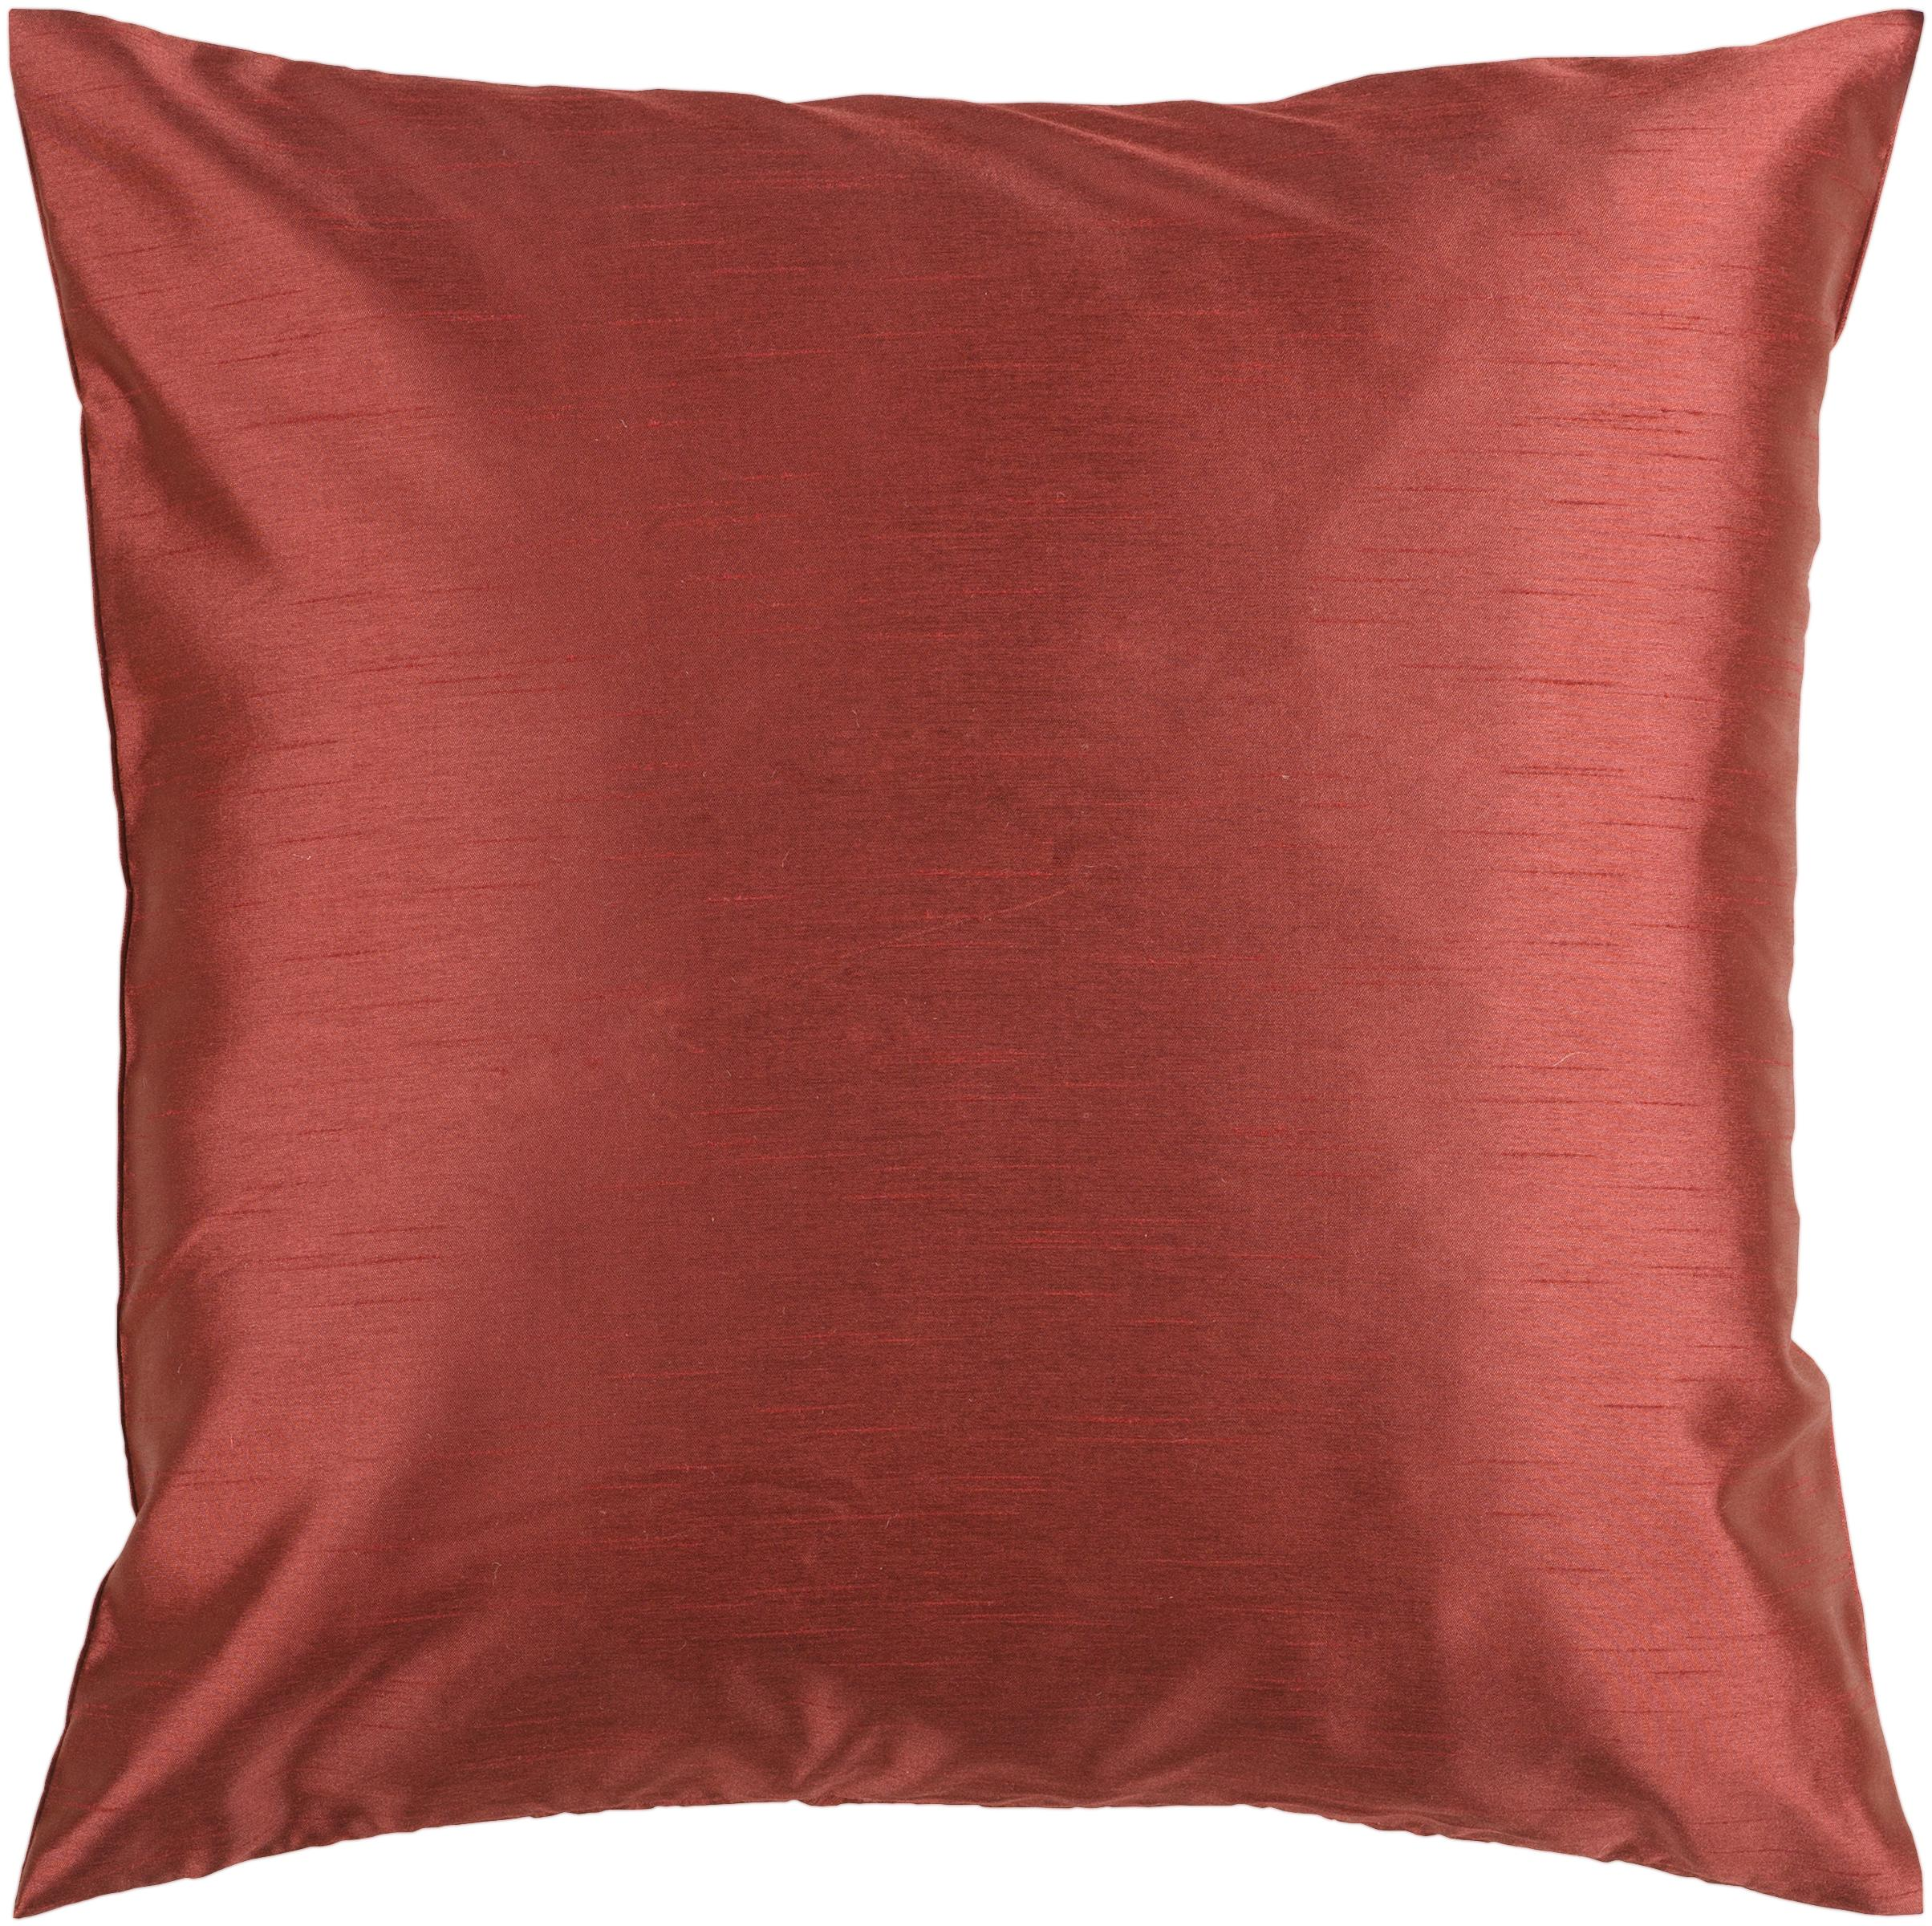 "Surya Pillows 22"" x 22"" Pillow - Item Number: HH045-2222P"